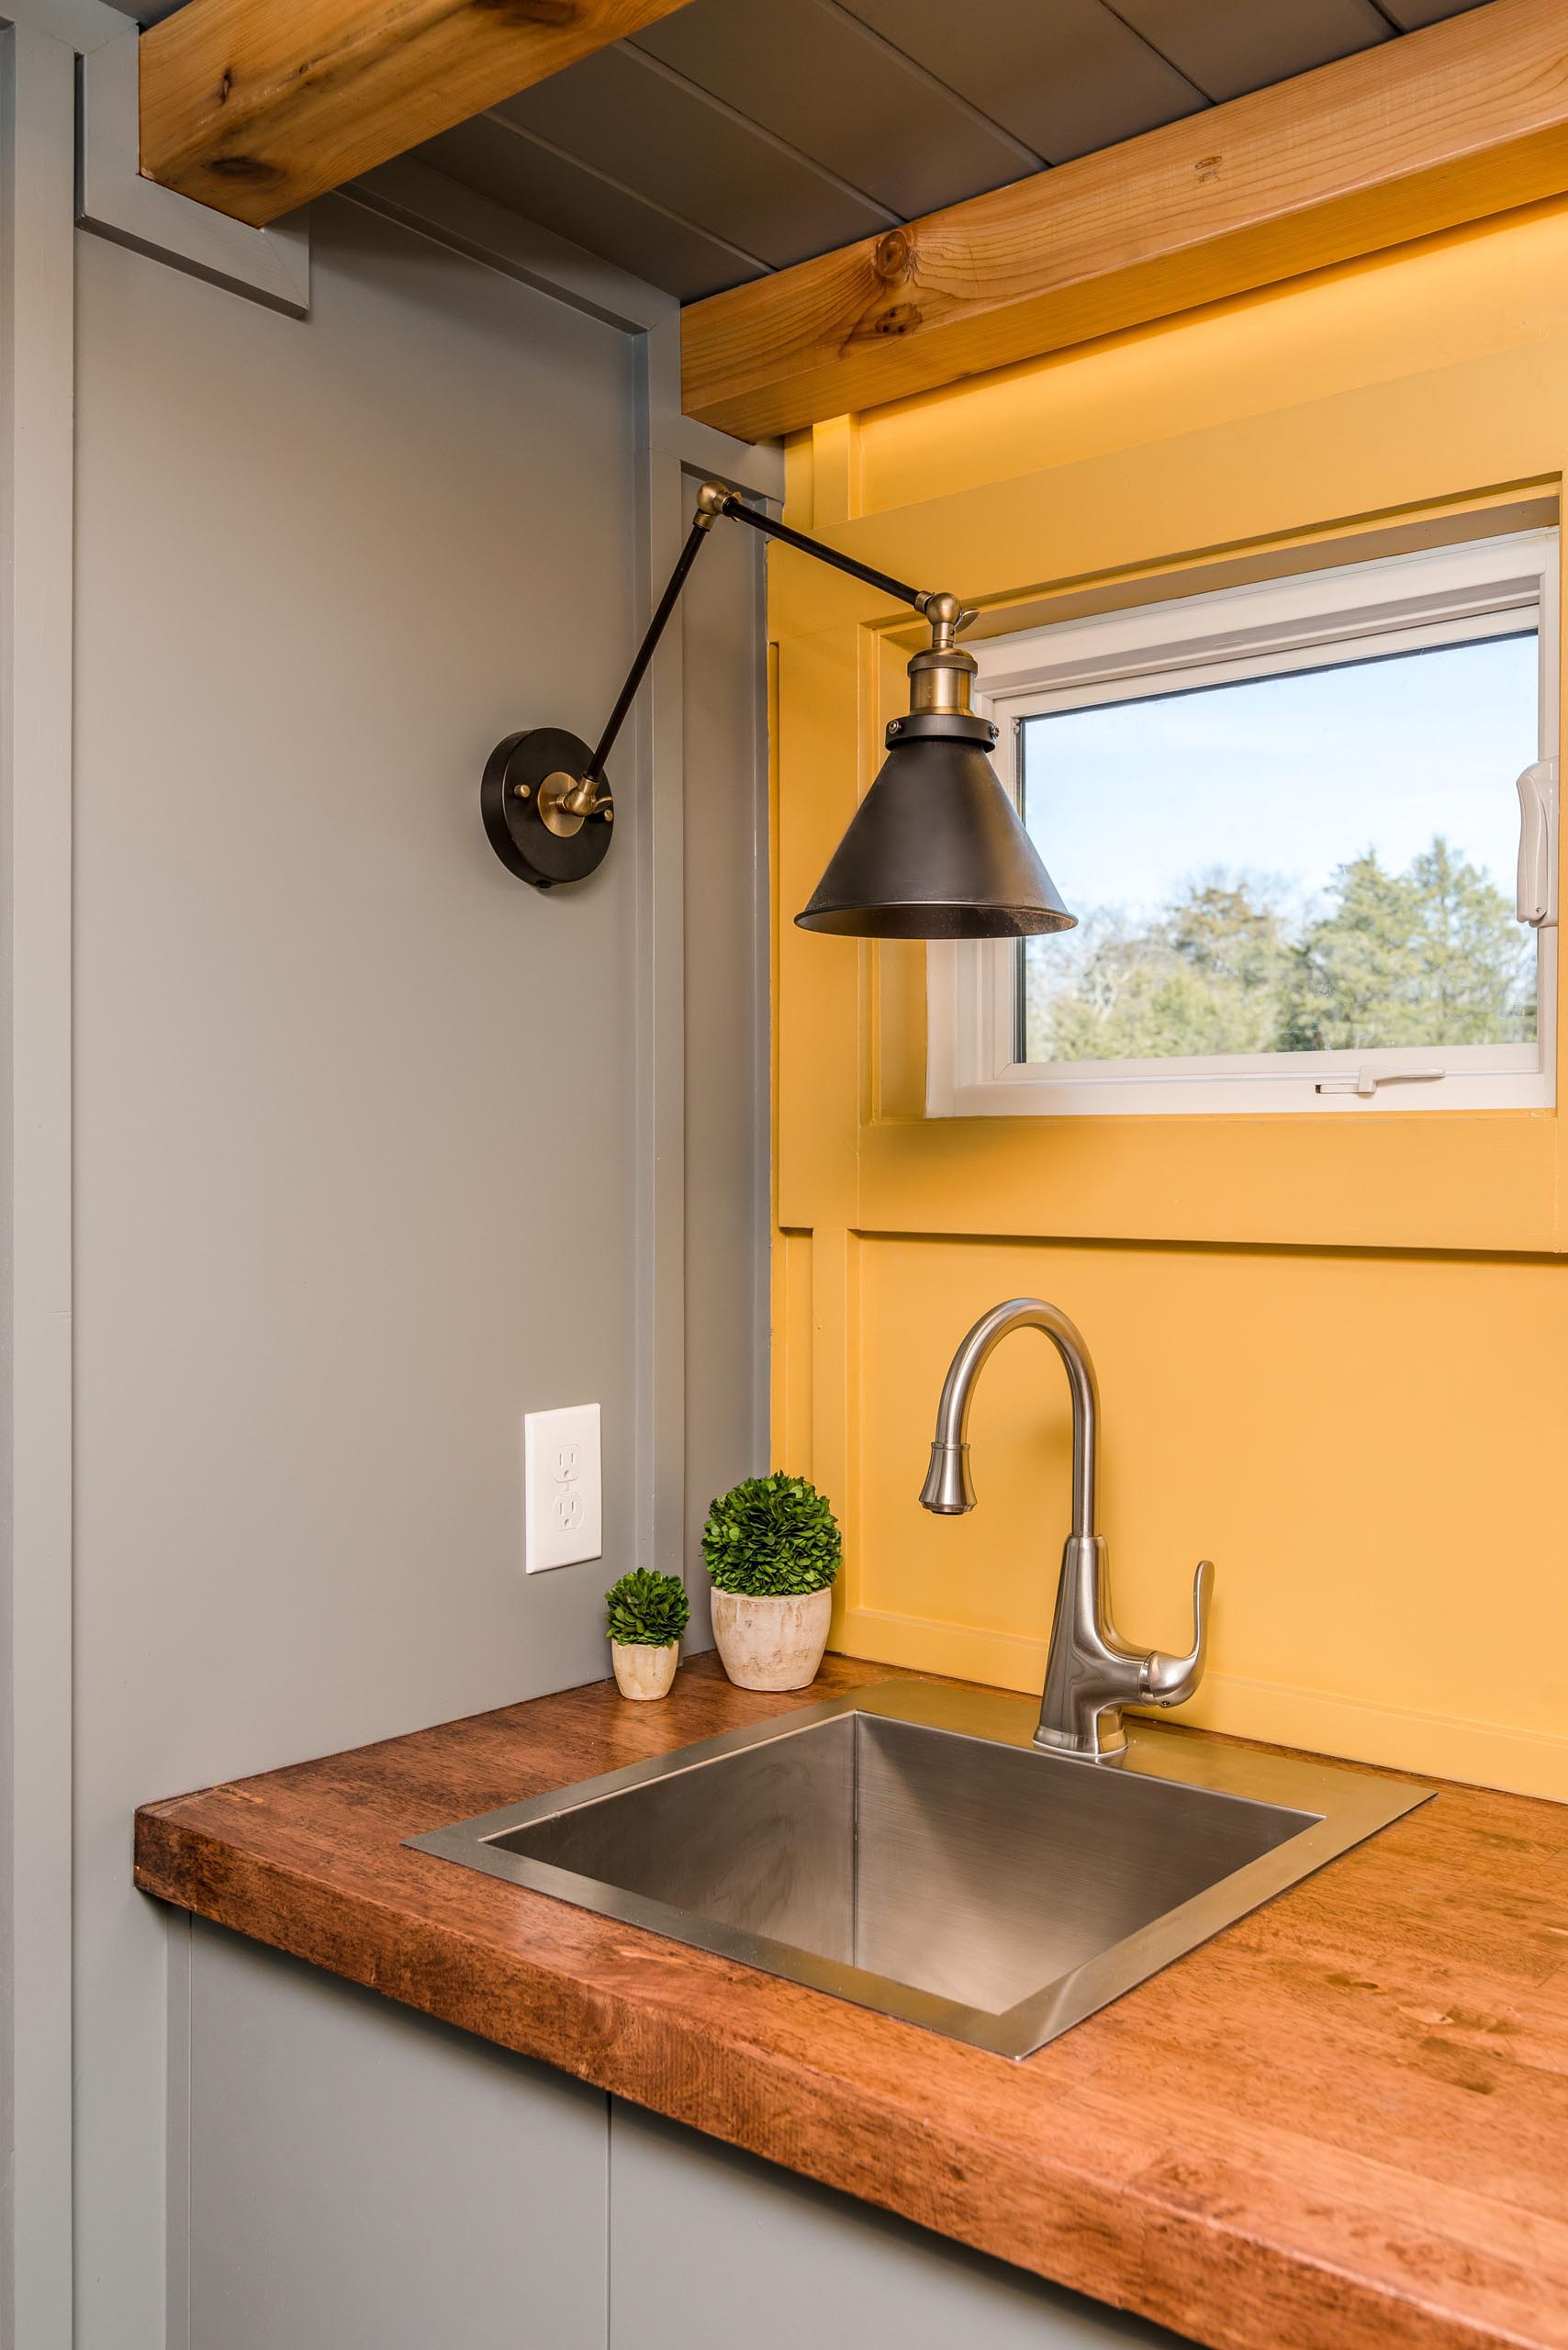 The soft yellow, gray, and wood kitchen of this tiny home includes a stainless steel faucet and matching sink, a dark wood countertop, and floating corner shelves.